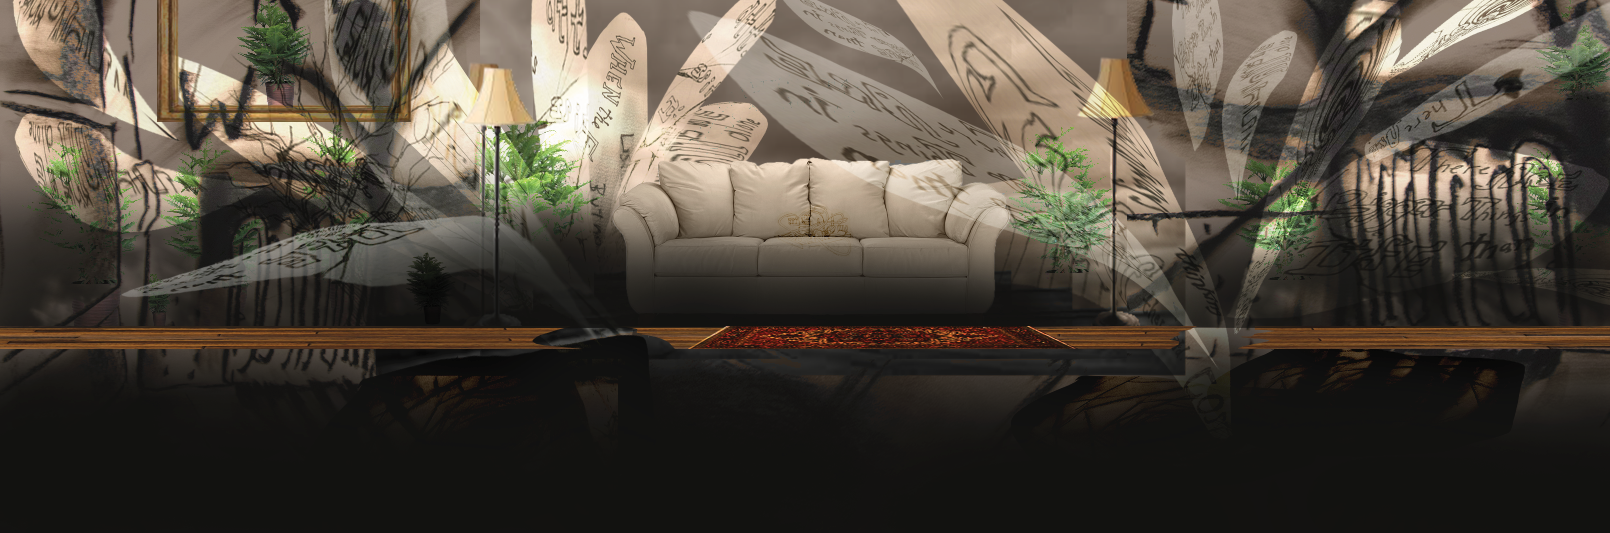 living room bg.png